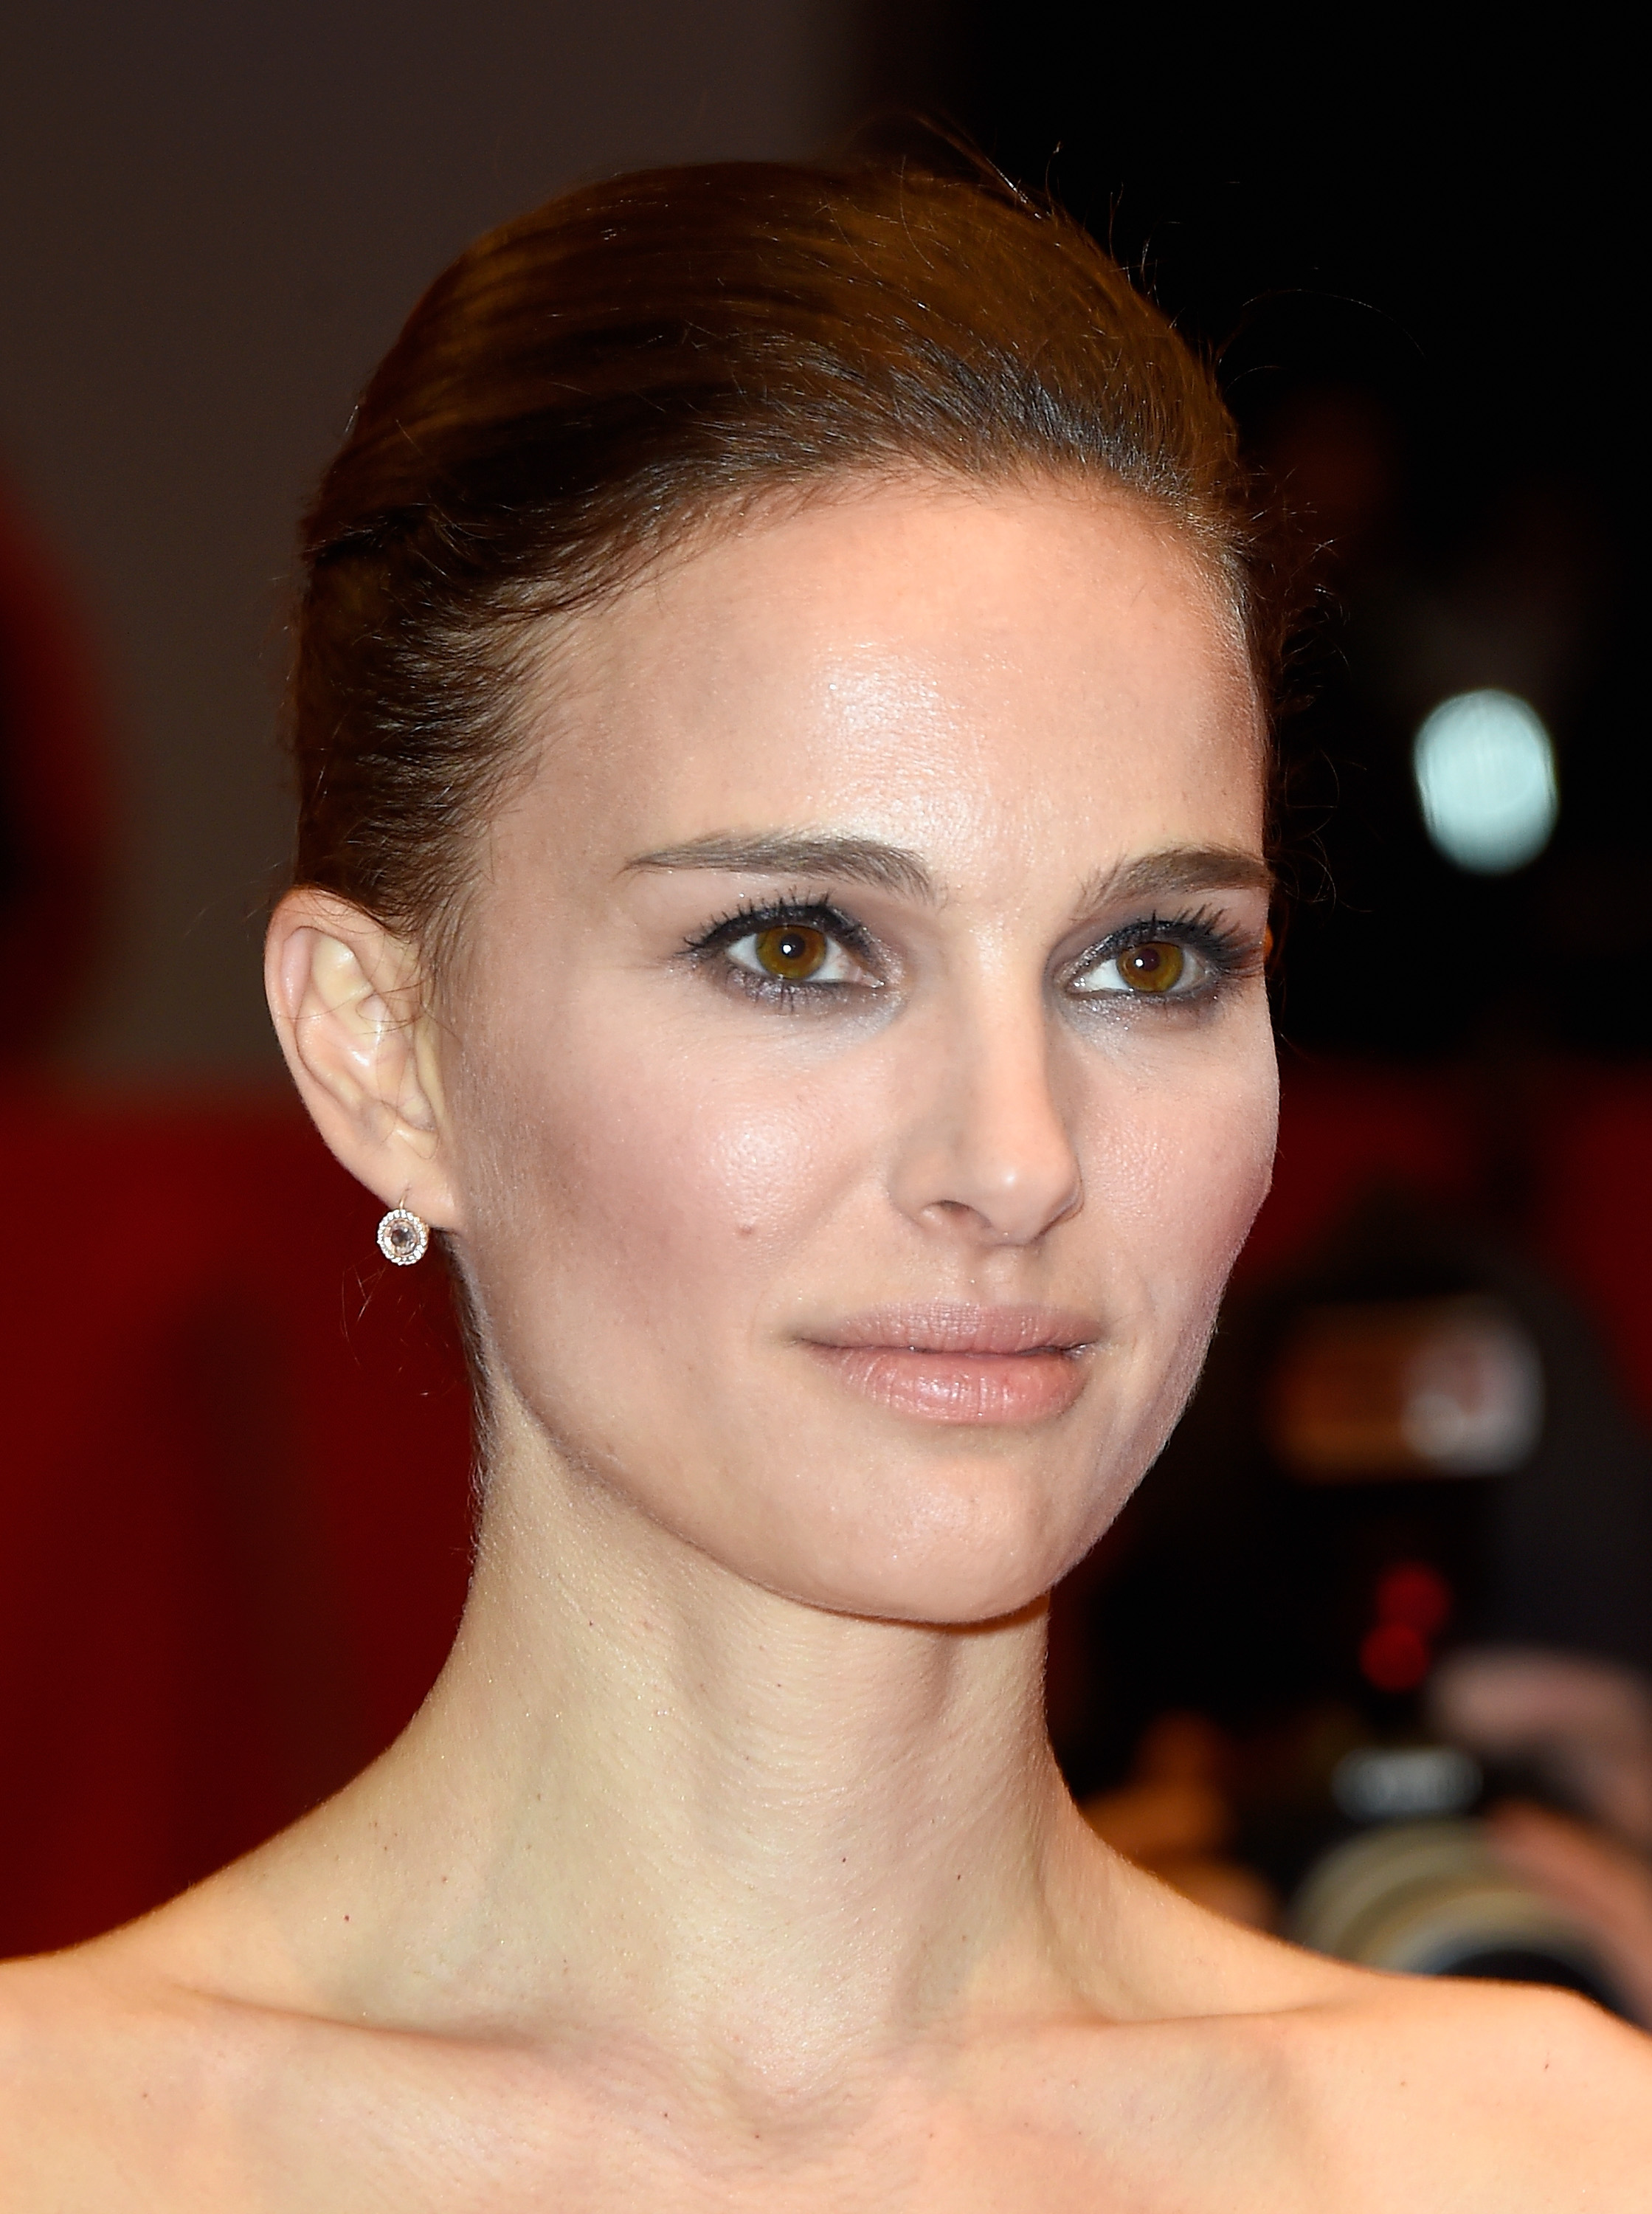 Actress Natalie Portman attends the 'As We Were Dreaming' premiere during the 65th Berlinale International Film Festival at Berlinale Palace on February 9, 2015 in Berlin, Germany.  (Pascal Le Segretain--Getty Images)